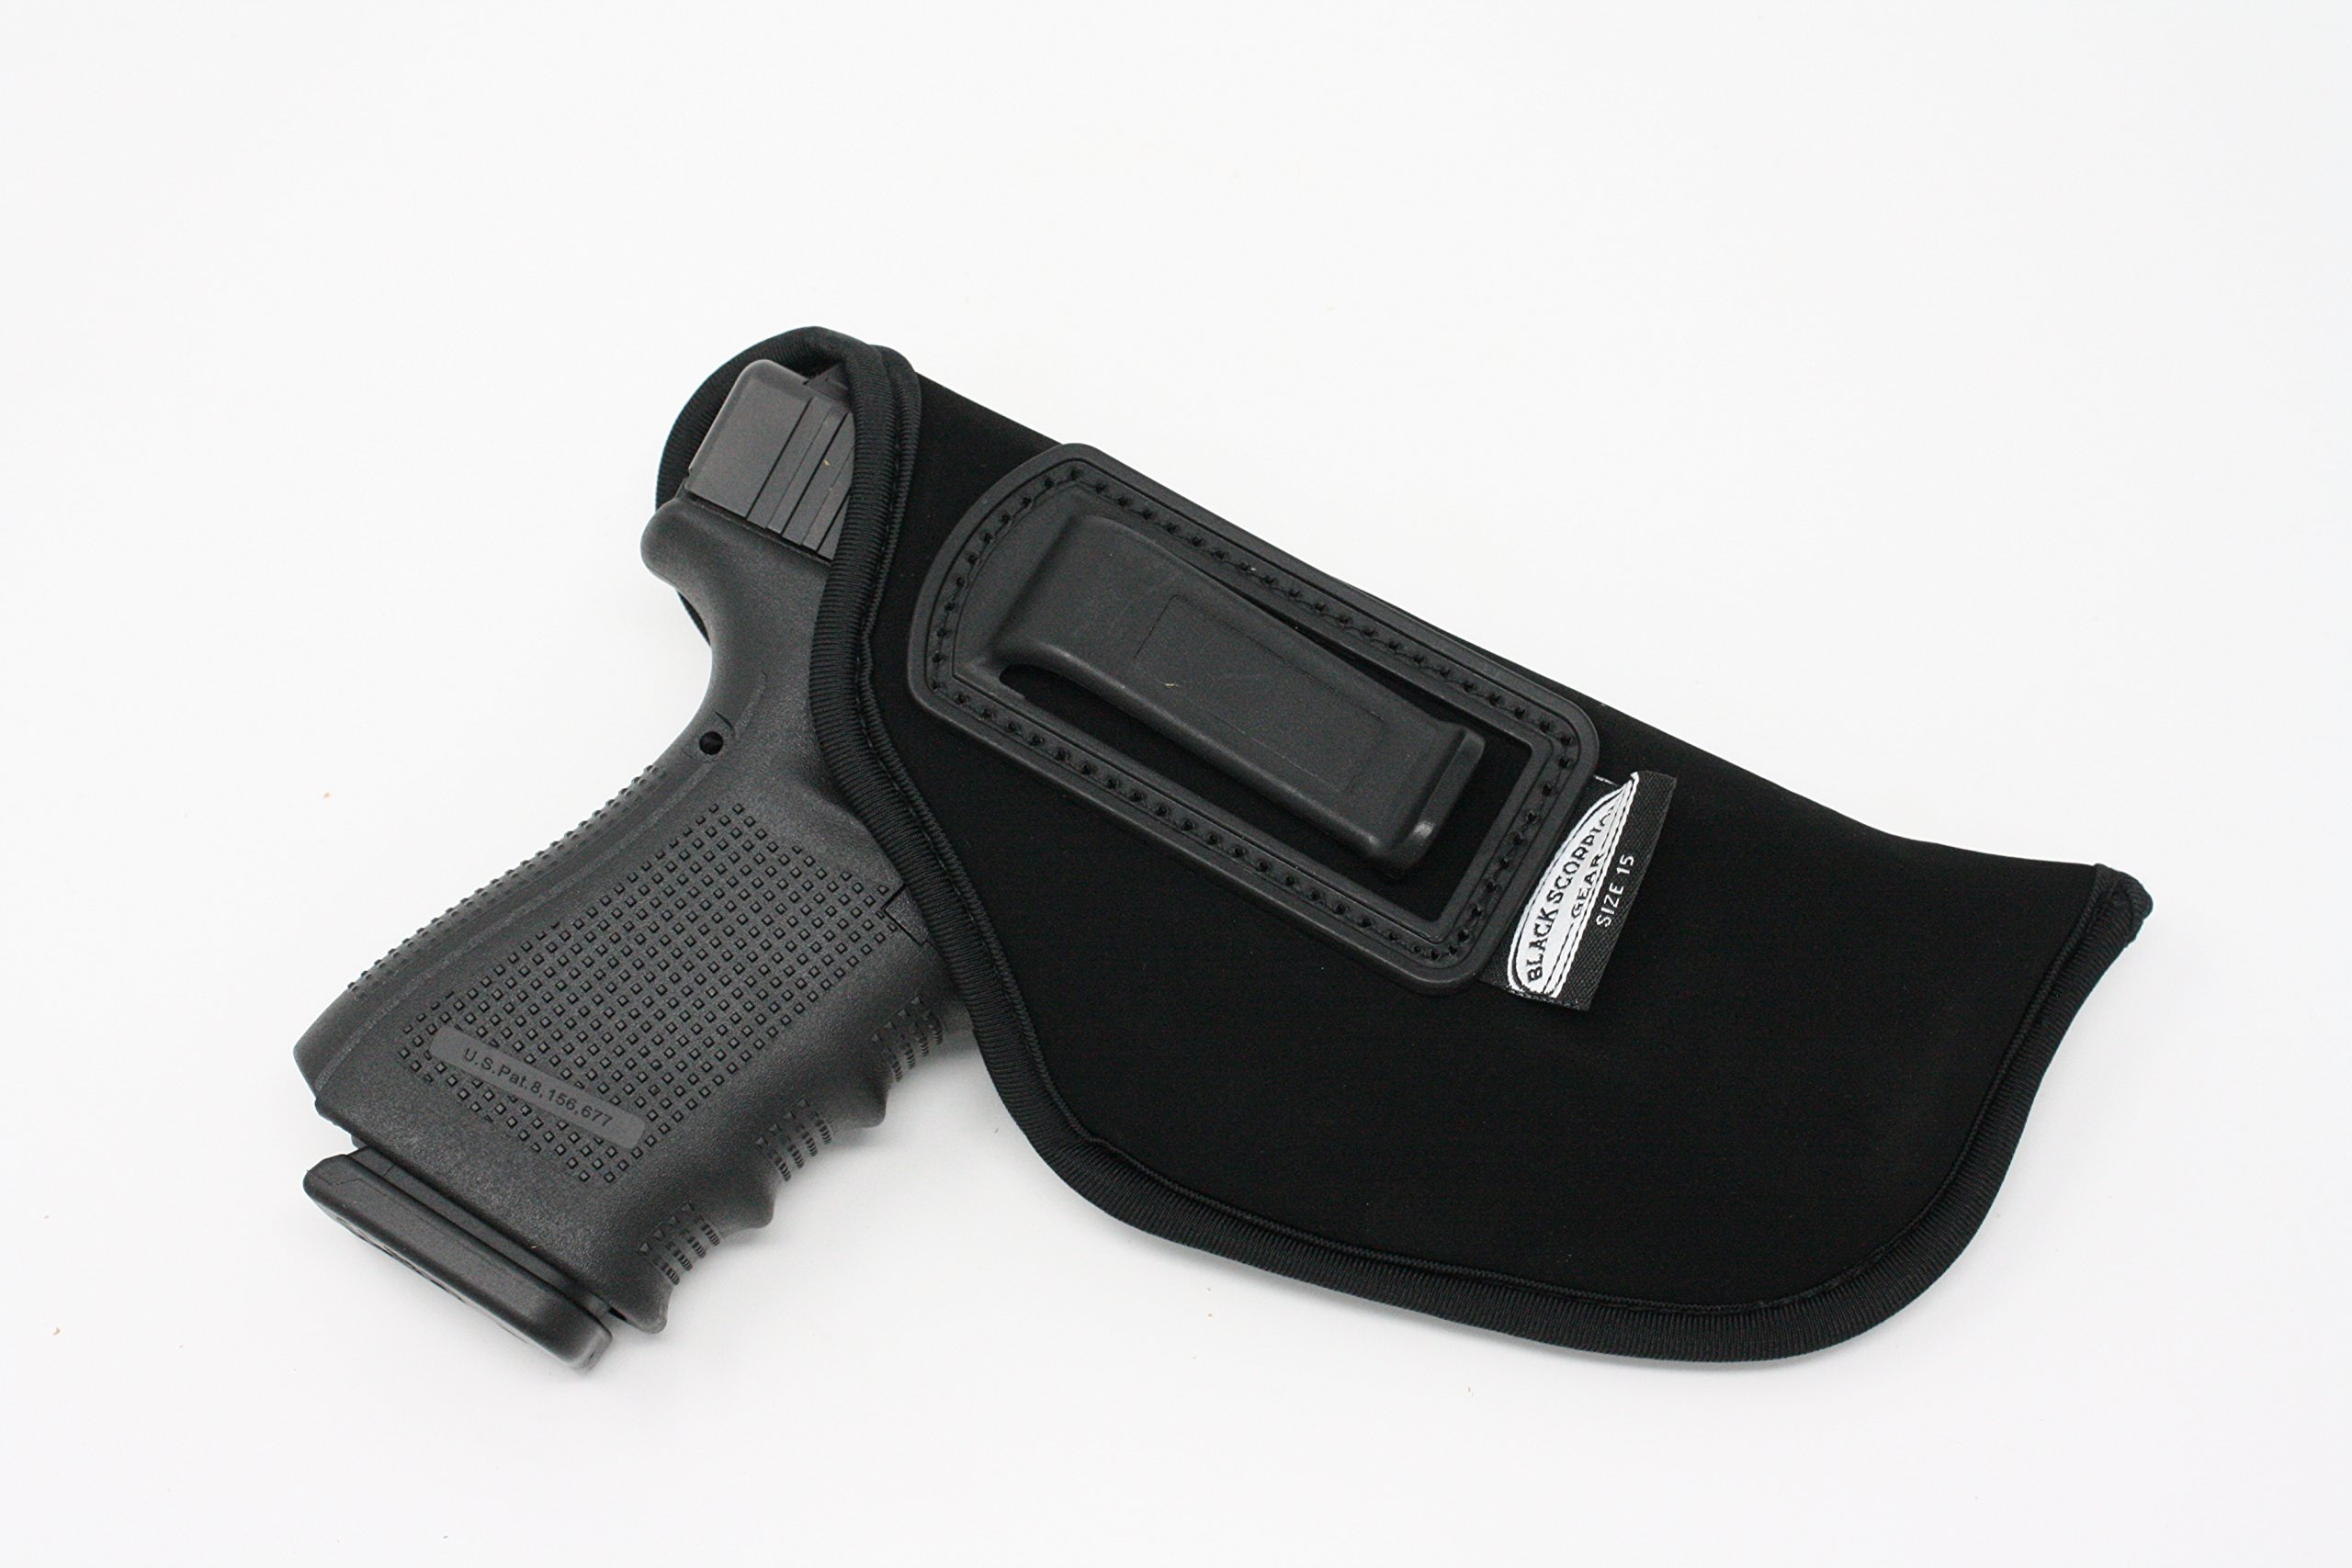 IWB Gun Holster by Black Scorpion - Neoprene Concealed Carry Soft Material | FITS Glock 17/21, H &K,Beretta 92 FS,XDM,Ruger 45 BERSA Pro,PX4,FNX 45,FNH 45,HI Point 9/40/45 MM (Right)